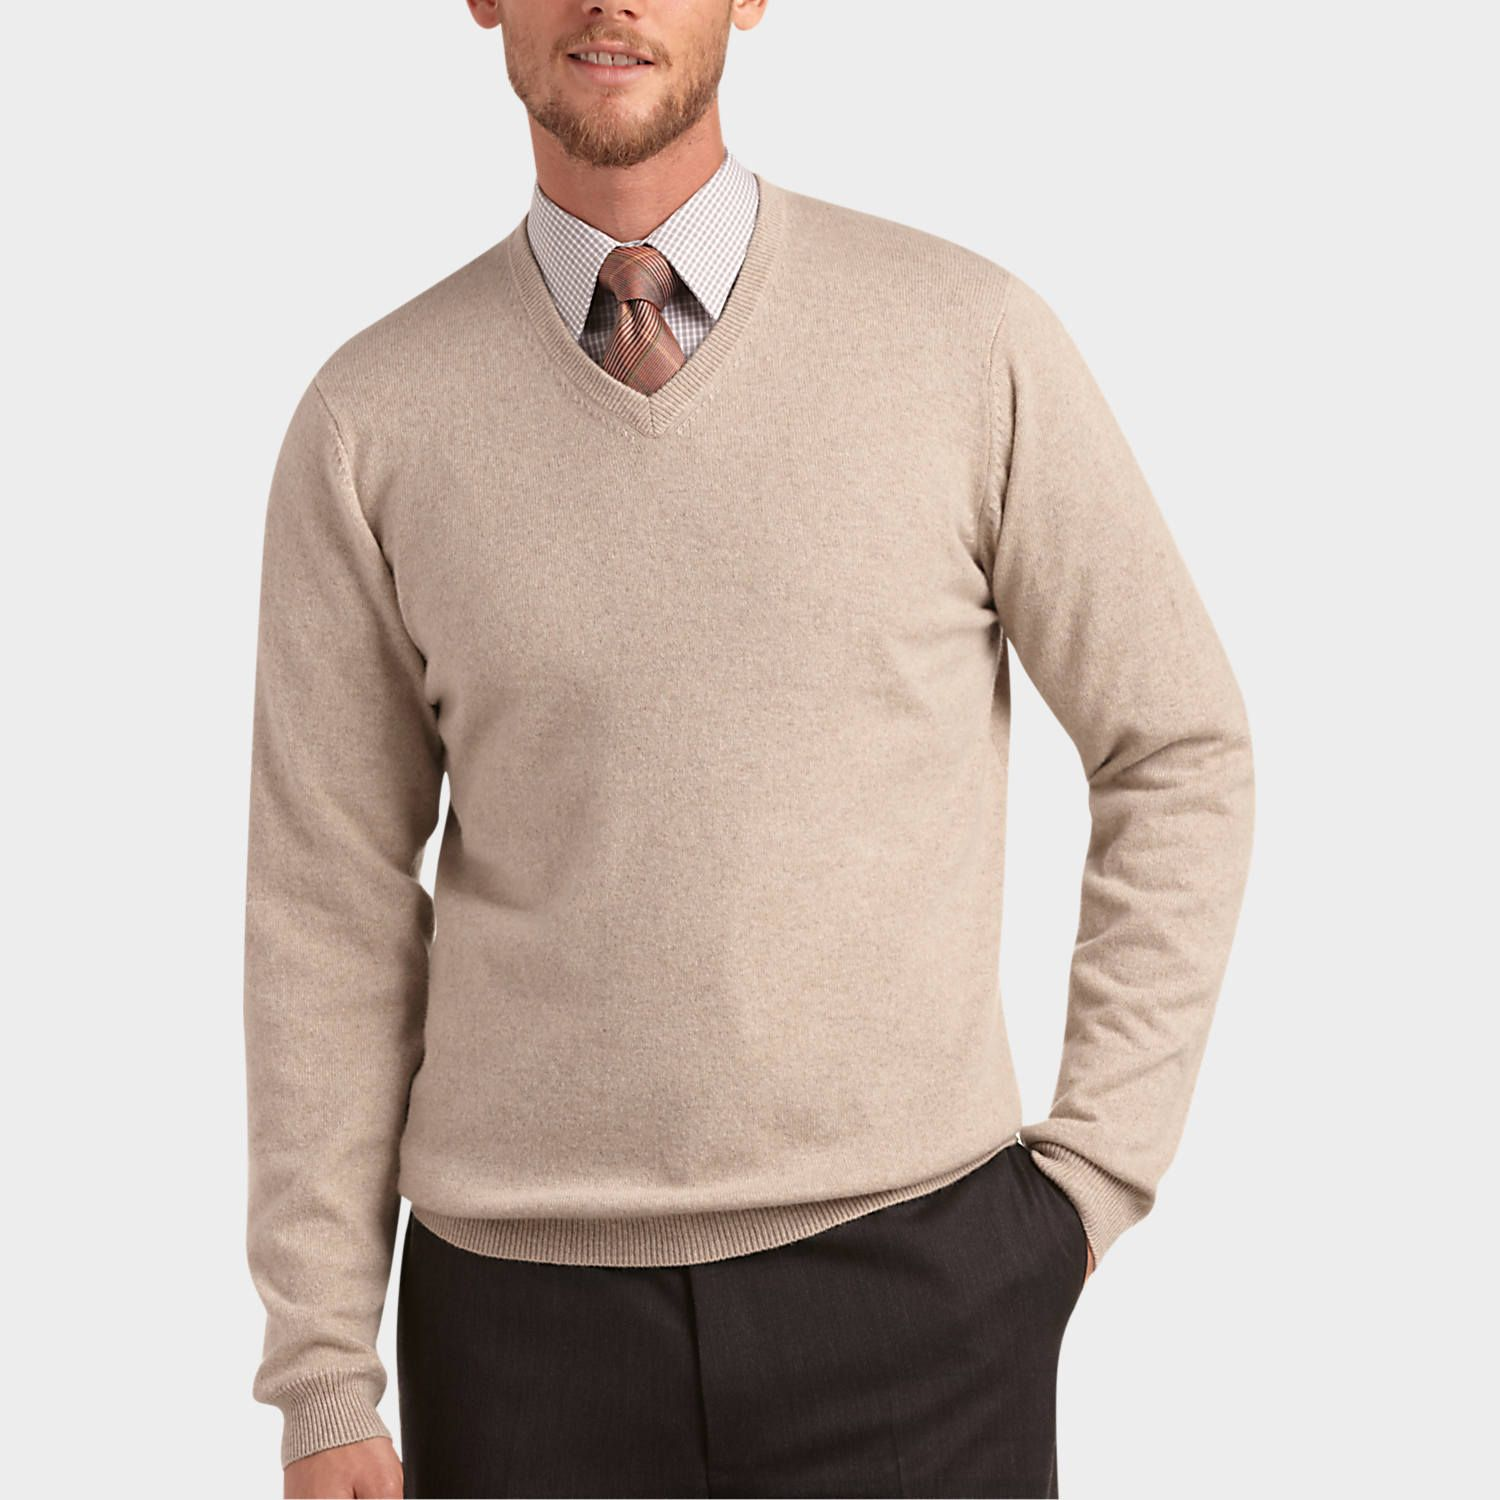 Men's Sweaters, Vests, Jackets & Hoodies | Men's Wearhouse | Fall ...